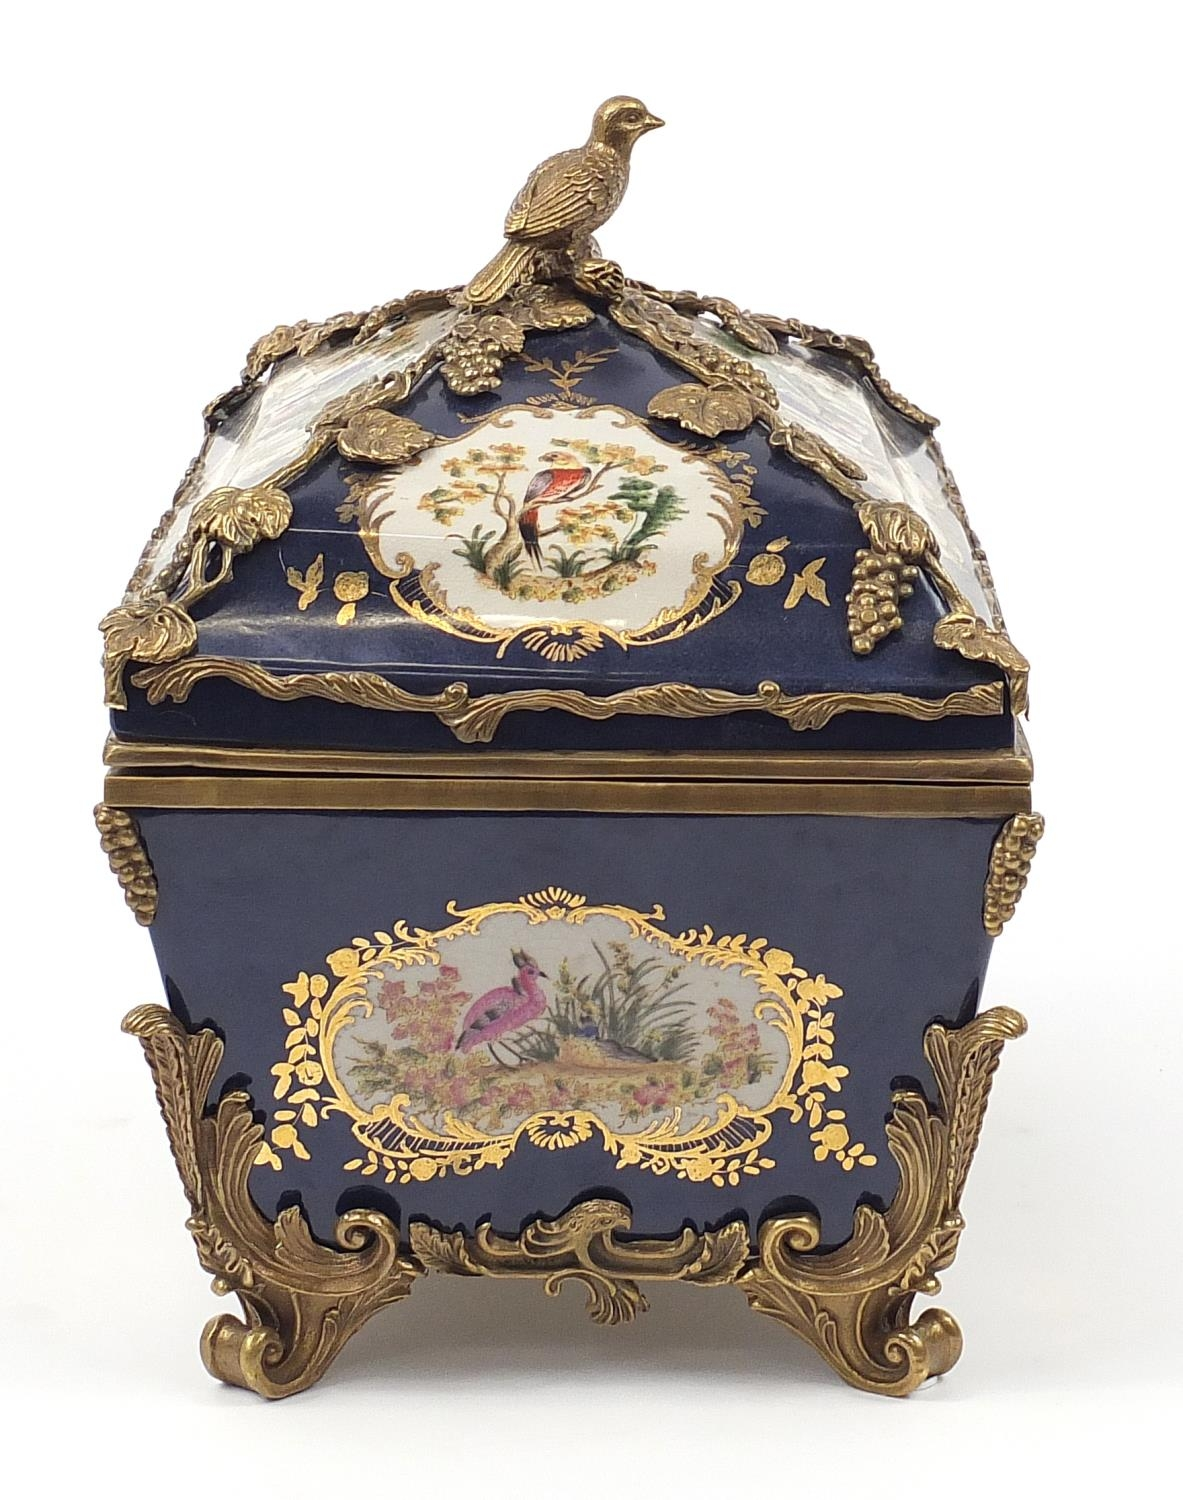 Continental bronze mounted porcelain table casket decorated with birds, leaves and berries, 35cm H x - Image 4 of 10